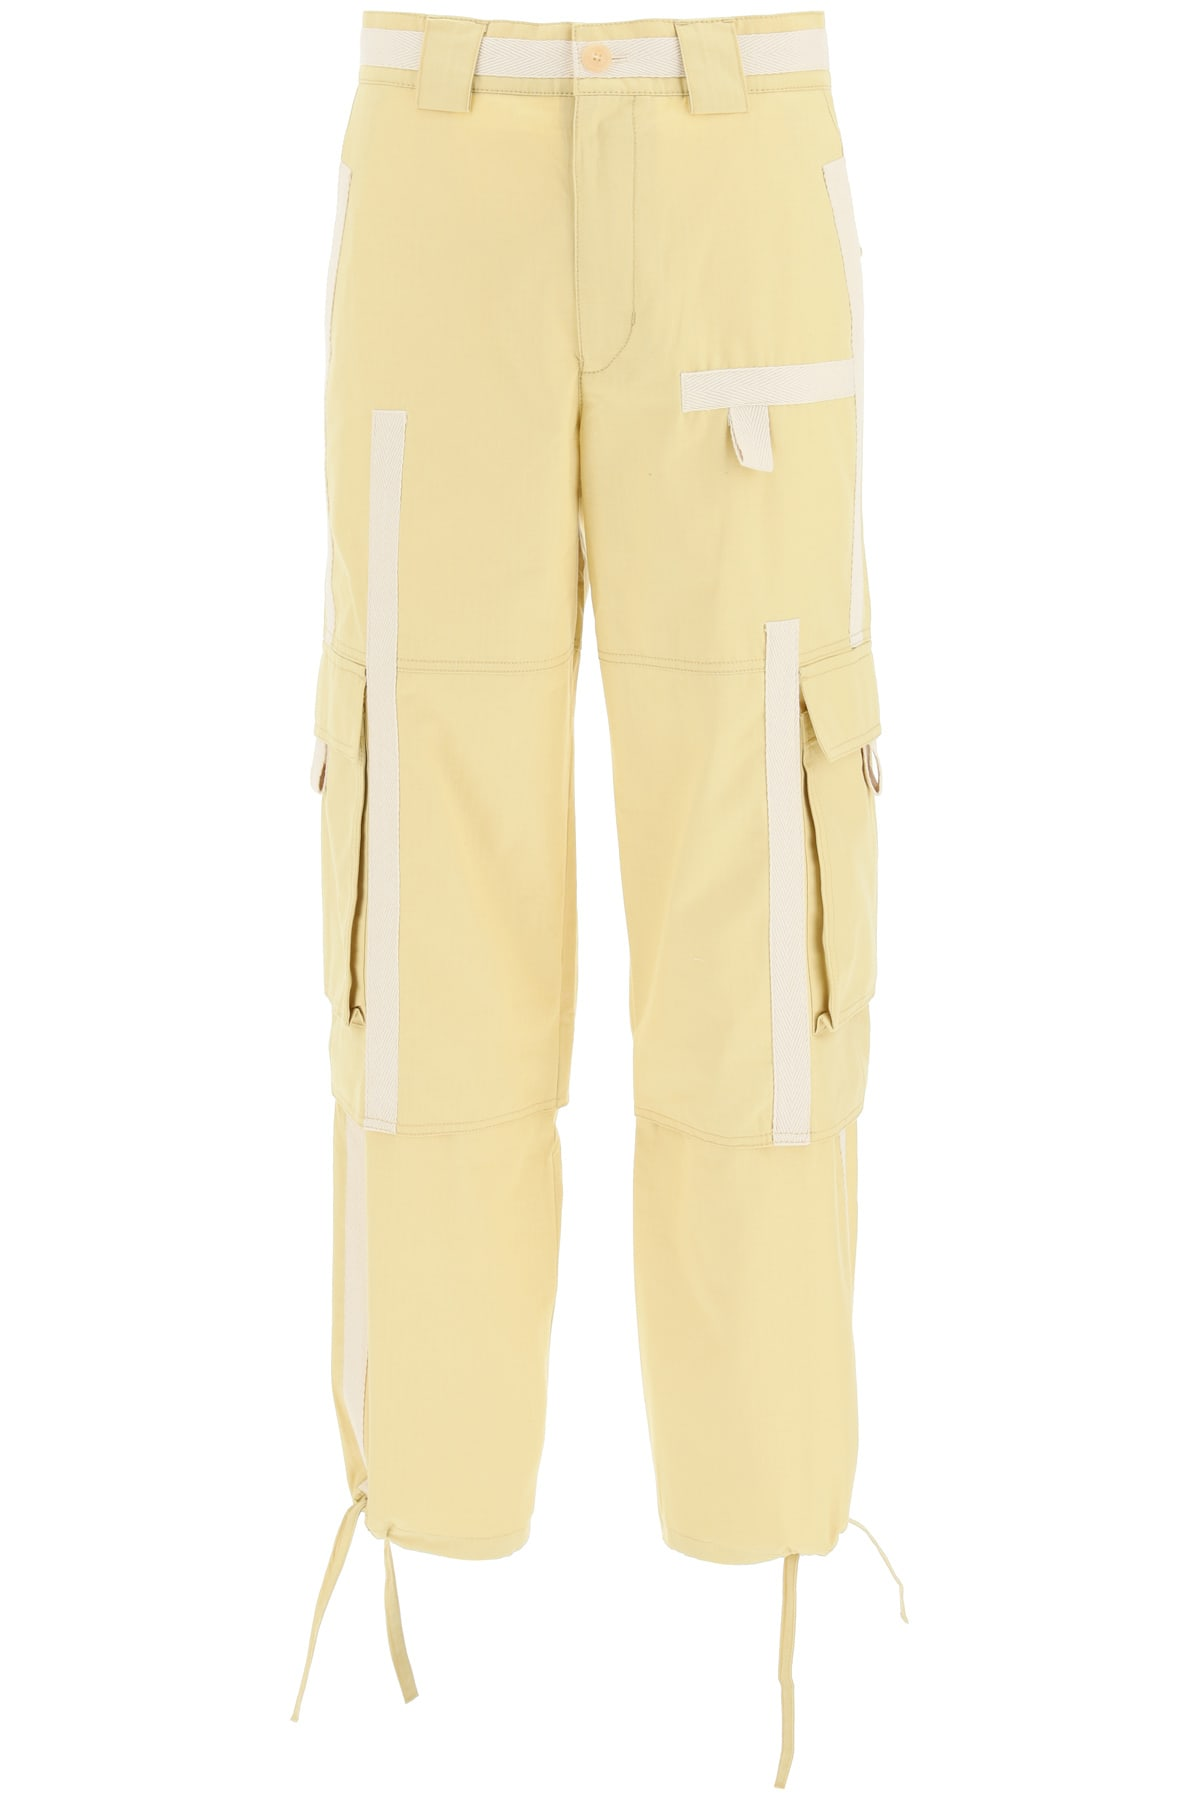 Jacquemus GRAIN CARGO TROUSERS